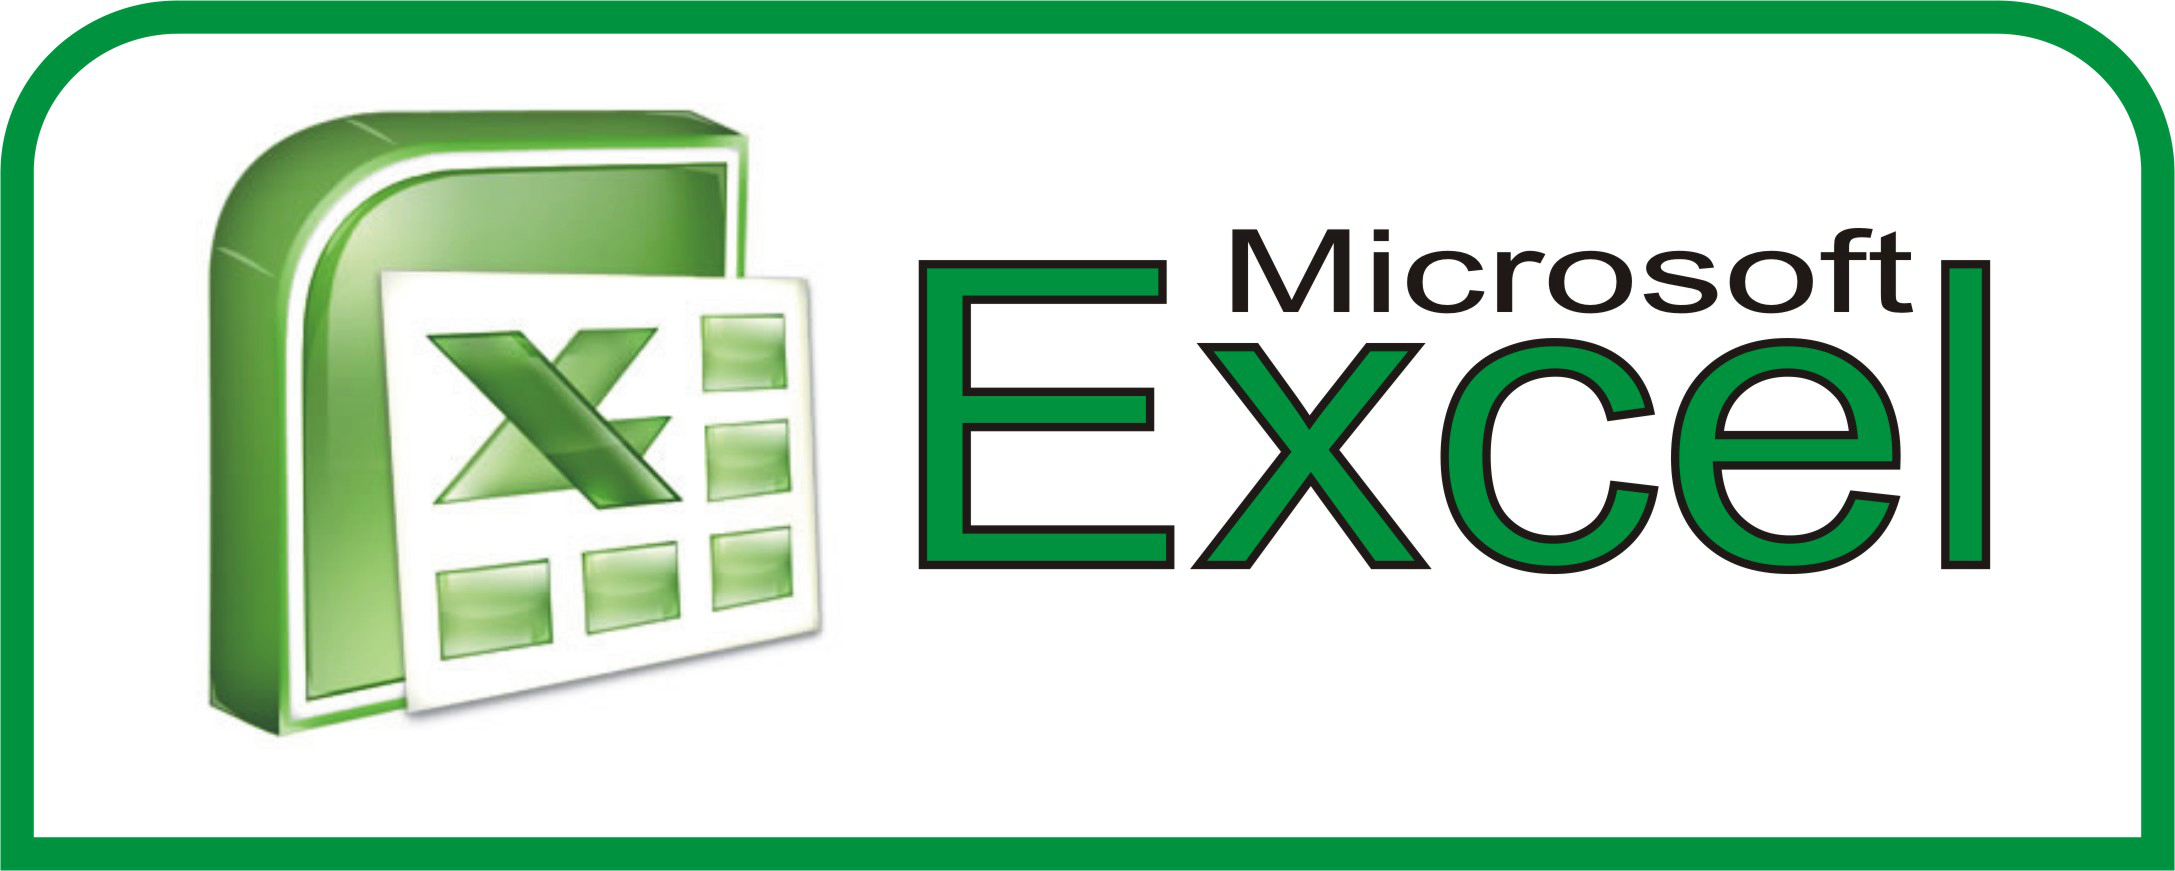 Ediblewildsus  Splendid  Excel Shortcuts You Probably Didnt Know About  Techdissected With Hot Excel  Trial Besides Excel In Math Furthermore Excel Round Up To Nearest  With Astonishing Excel File In Use Also Finding The Median In Excel In Addition Delete Rows In Excel Vba And Basic Excel Formulas Cheat Sheet As Well As Excel Full Screen Shortcut Additionally Excel  If Then From Techdissectedcom With Ediblewildsus  Hot  Excel Shortcuts You Probably Didnt Know About  Techdissected With Astonishing Excel  Trial Besides Excel In Math Furthermore Excel Round Up To Nearest  And Splendid Excel File In Use Also Finding The Median In Excel In Addition Delete Rows In Excel Vba From Techdissectedcom